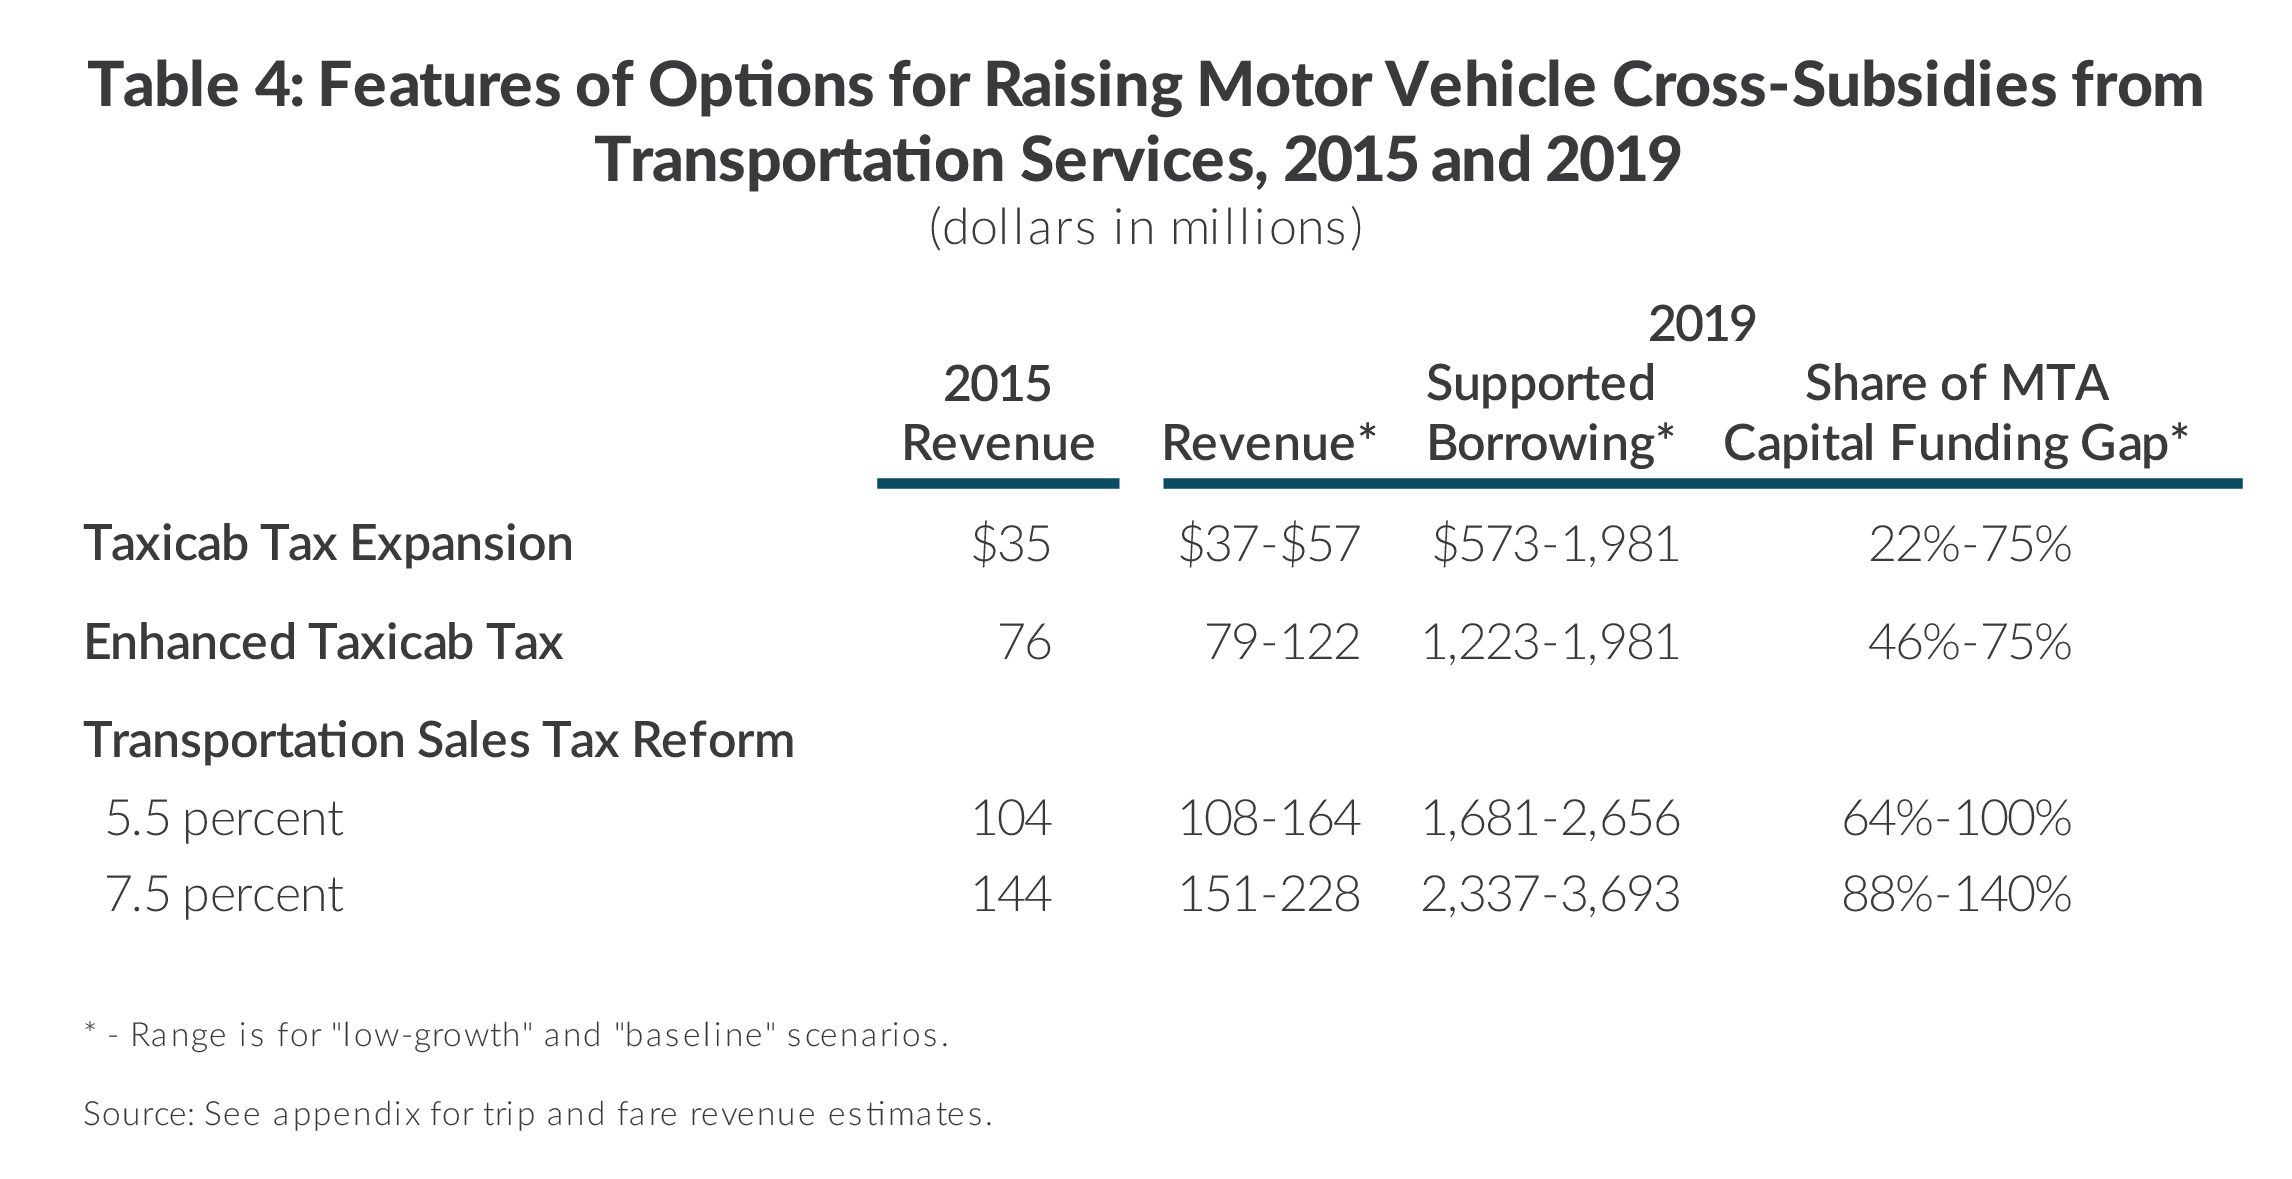 Table illustrating summary of options of raising motor vehicle cross-subsidies from Taxi and Limousin Commission services, revenue, supported borrowing, and share of MTA capital funding gap, includes expanded, expanded and enhanced taxicab tax, and transportation sales tax reform